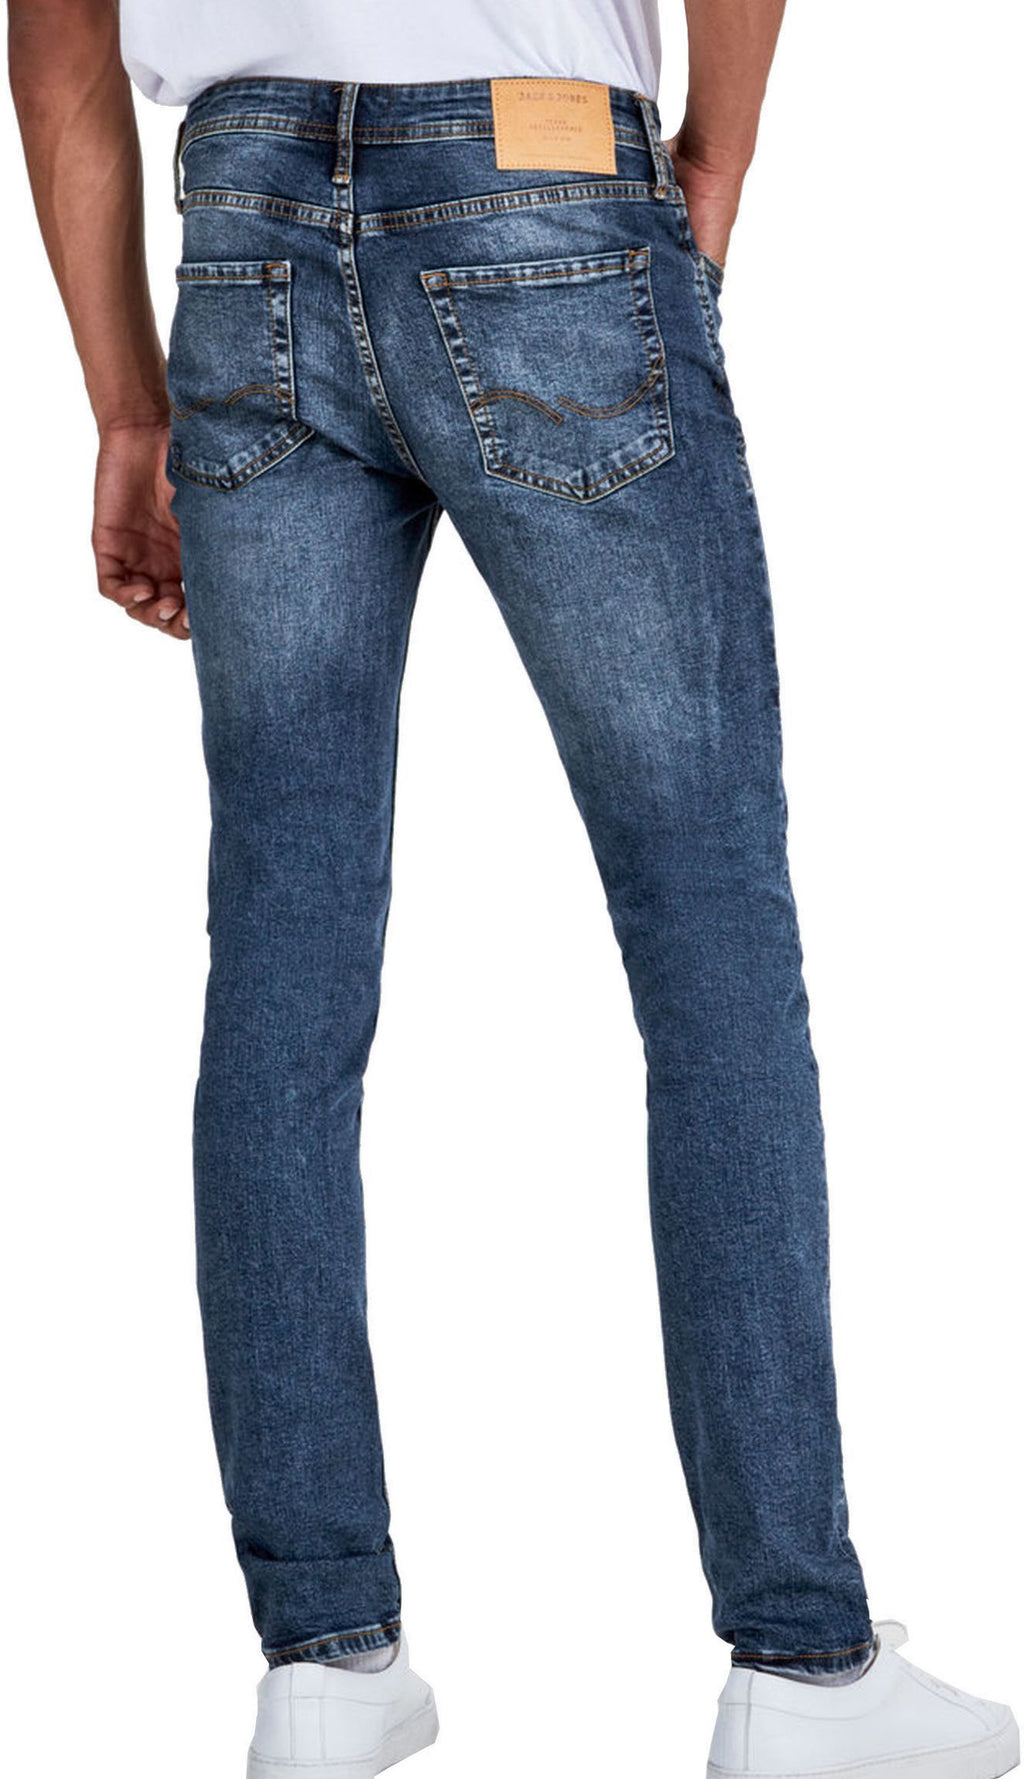 Jack & Jones Glenn Original 005 Slim Fit Denim Jeans Blue